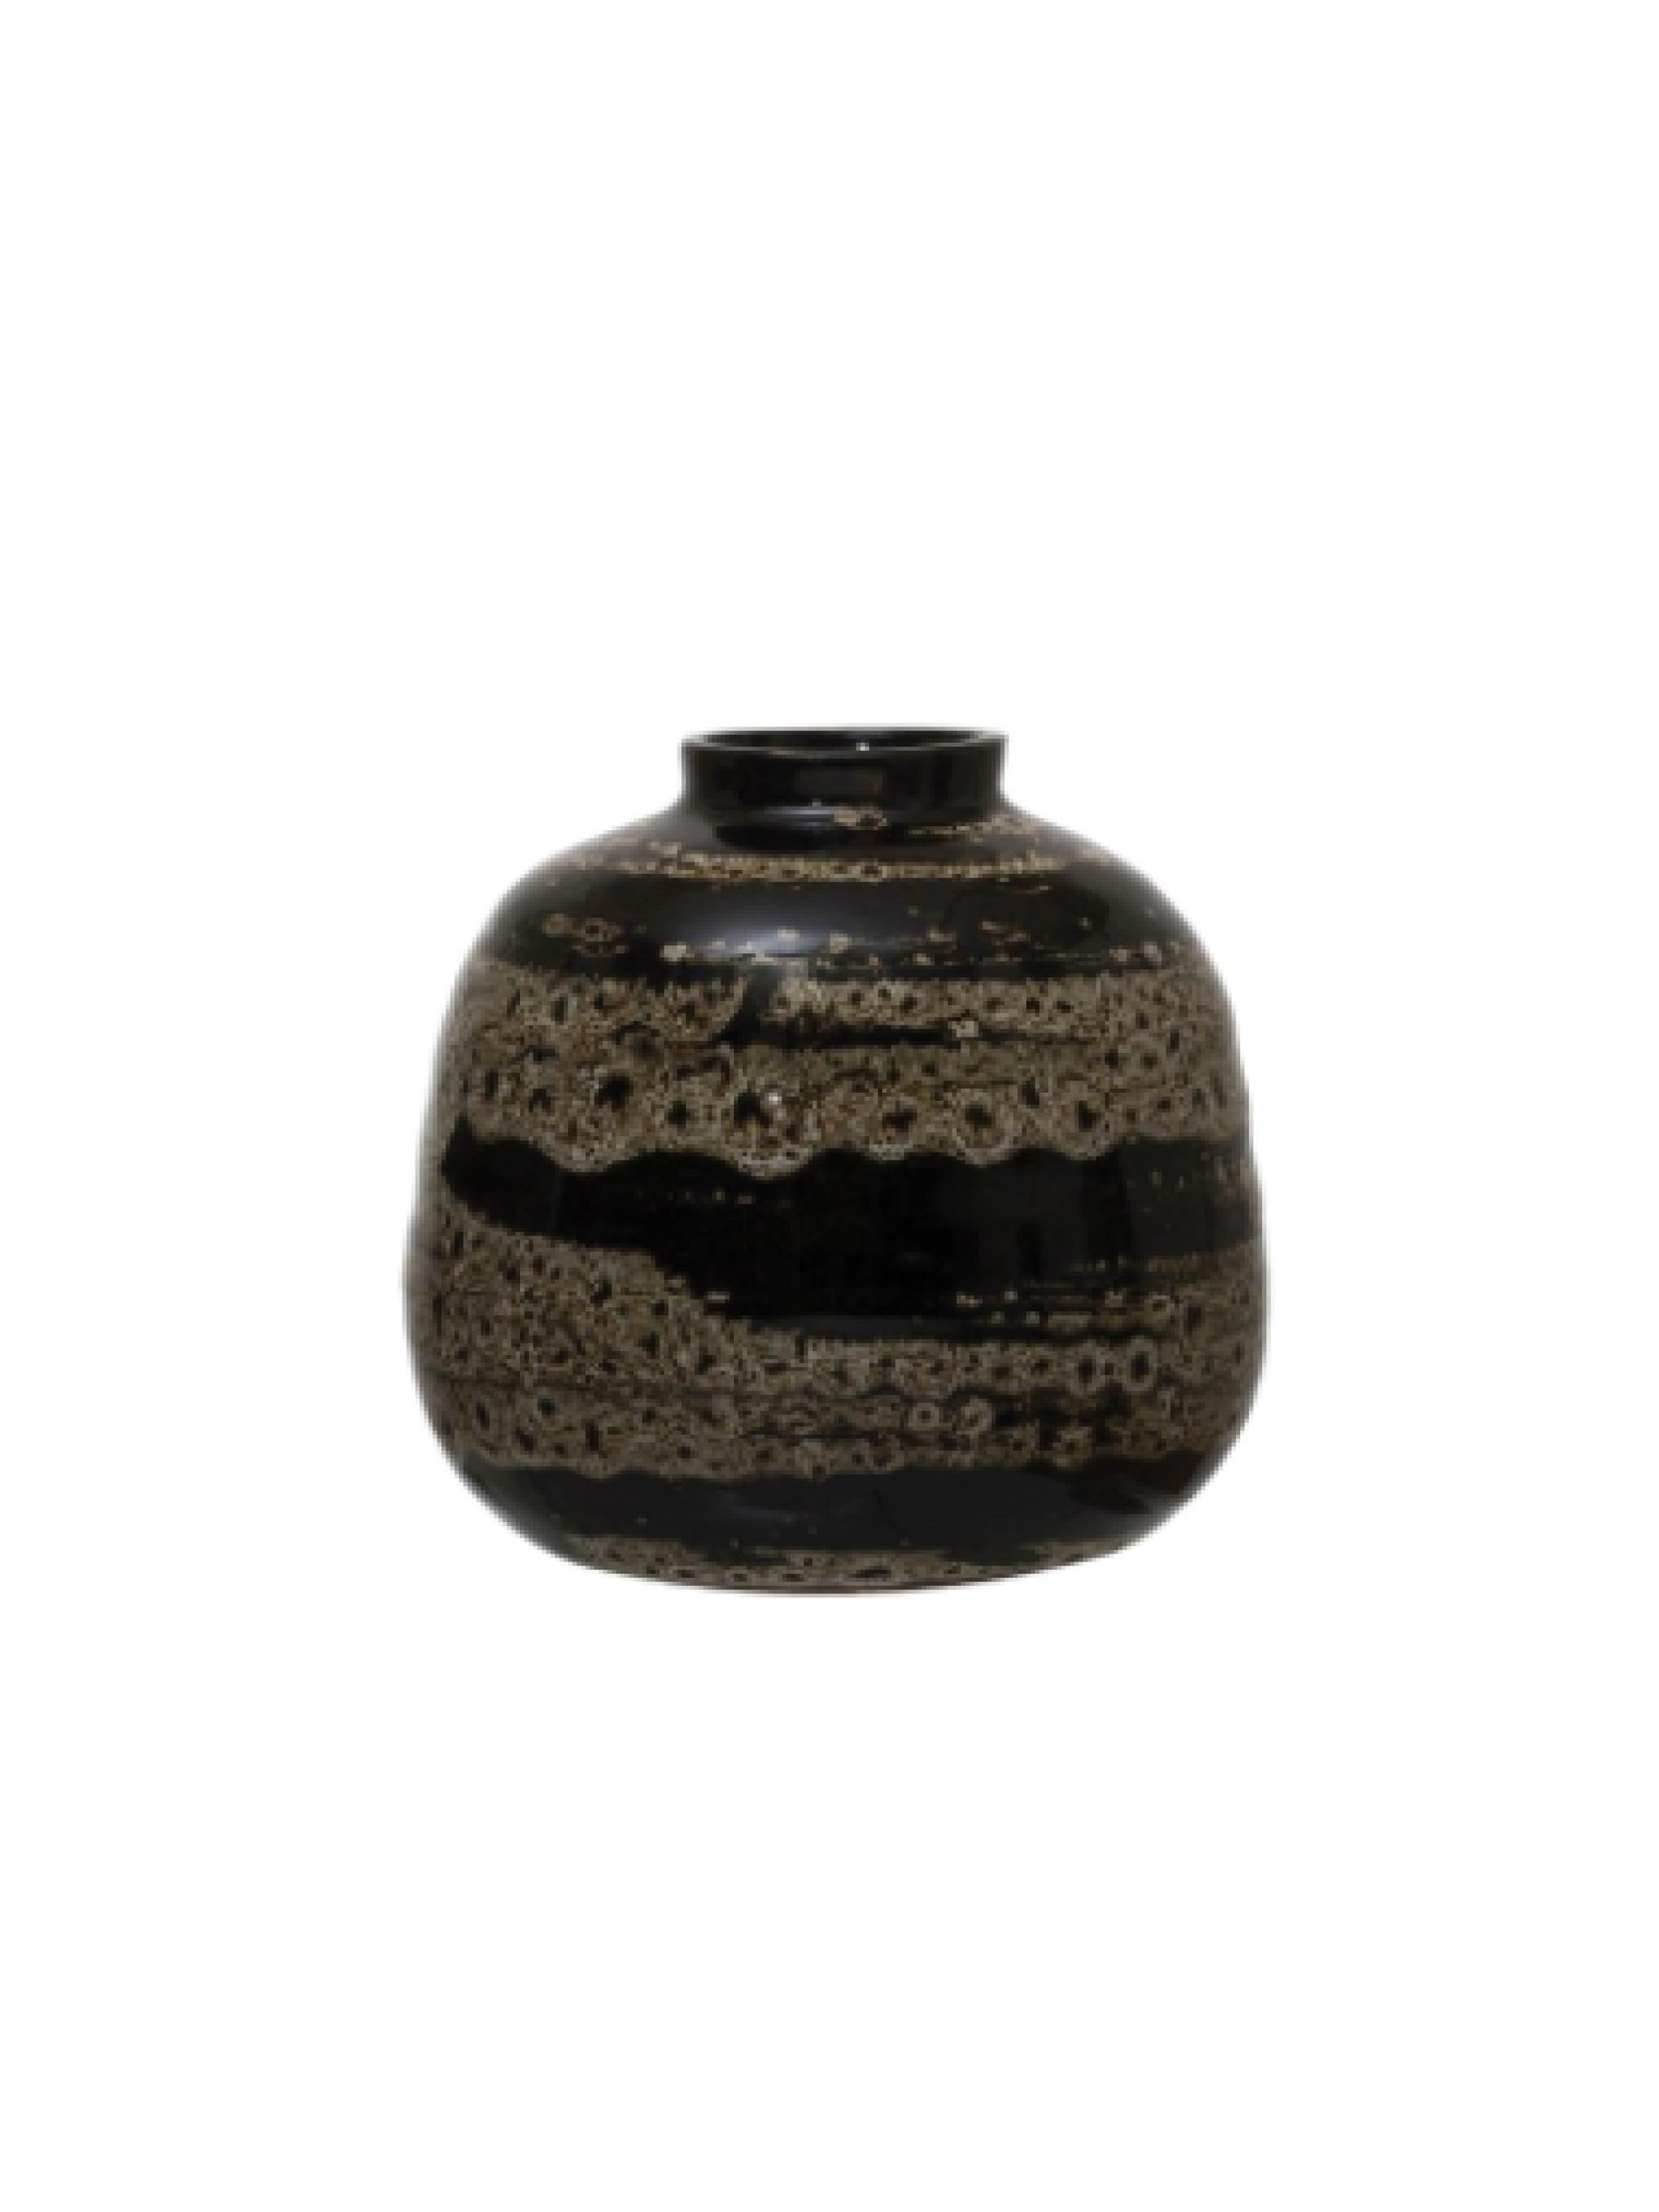 Brown Glazed Terra Cotta Vase